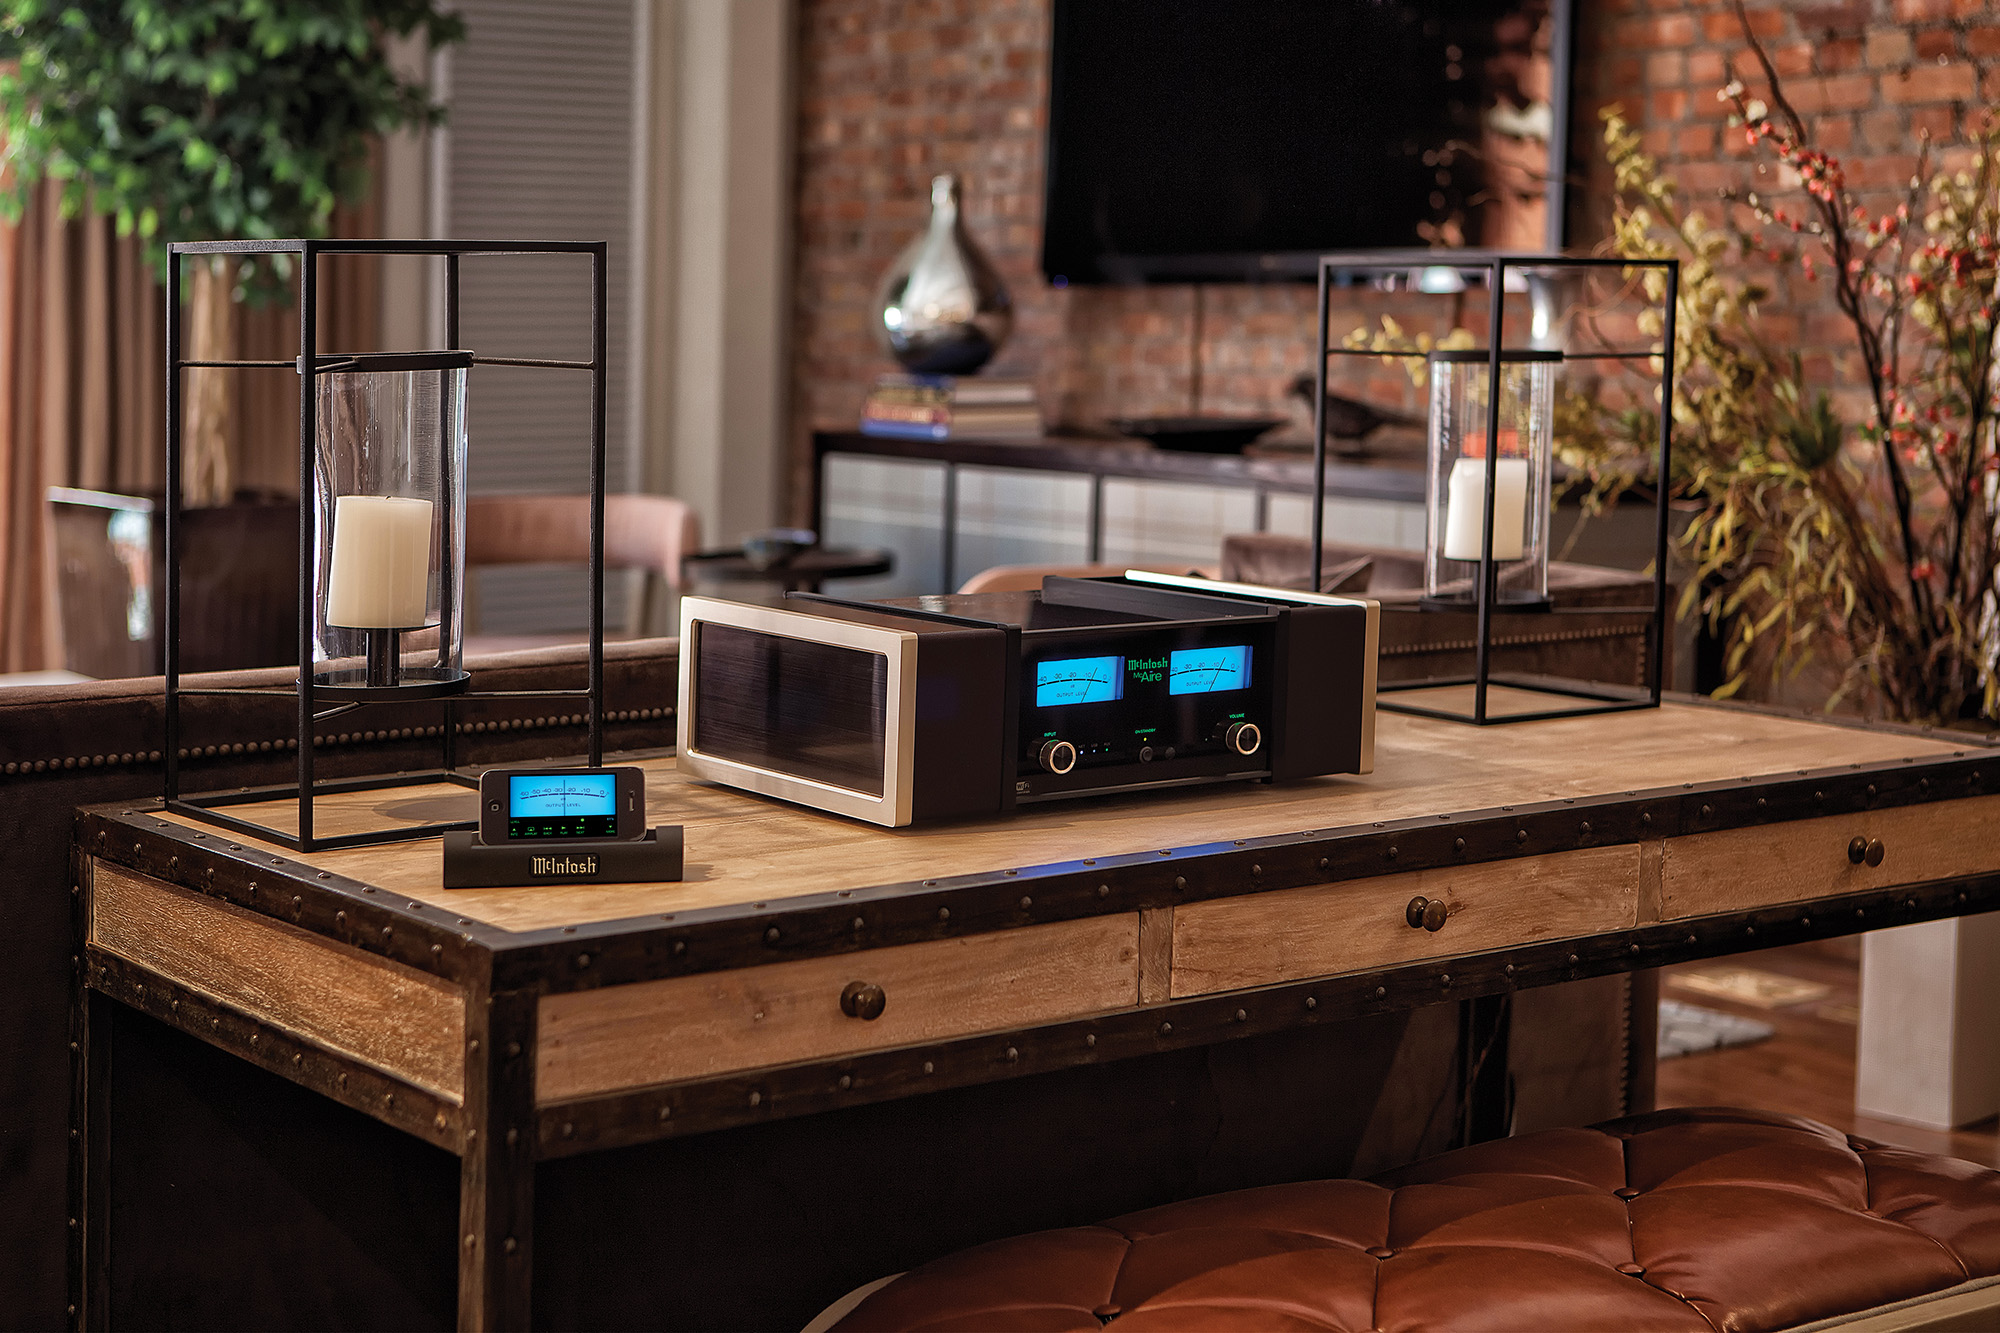 mcintosh mcaire integrated audio system. Black Bedroom Furniture Sets. Home Design Ideas